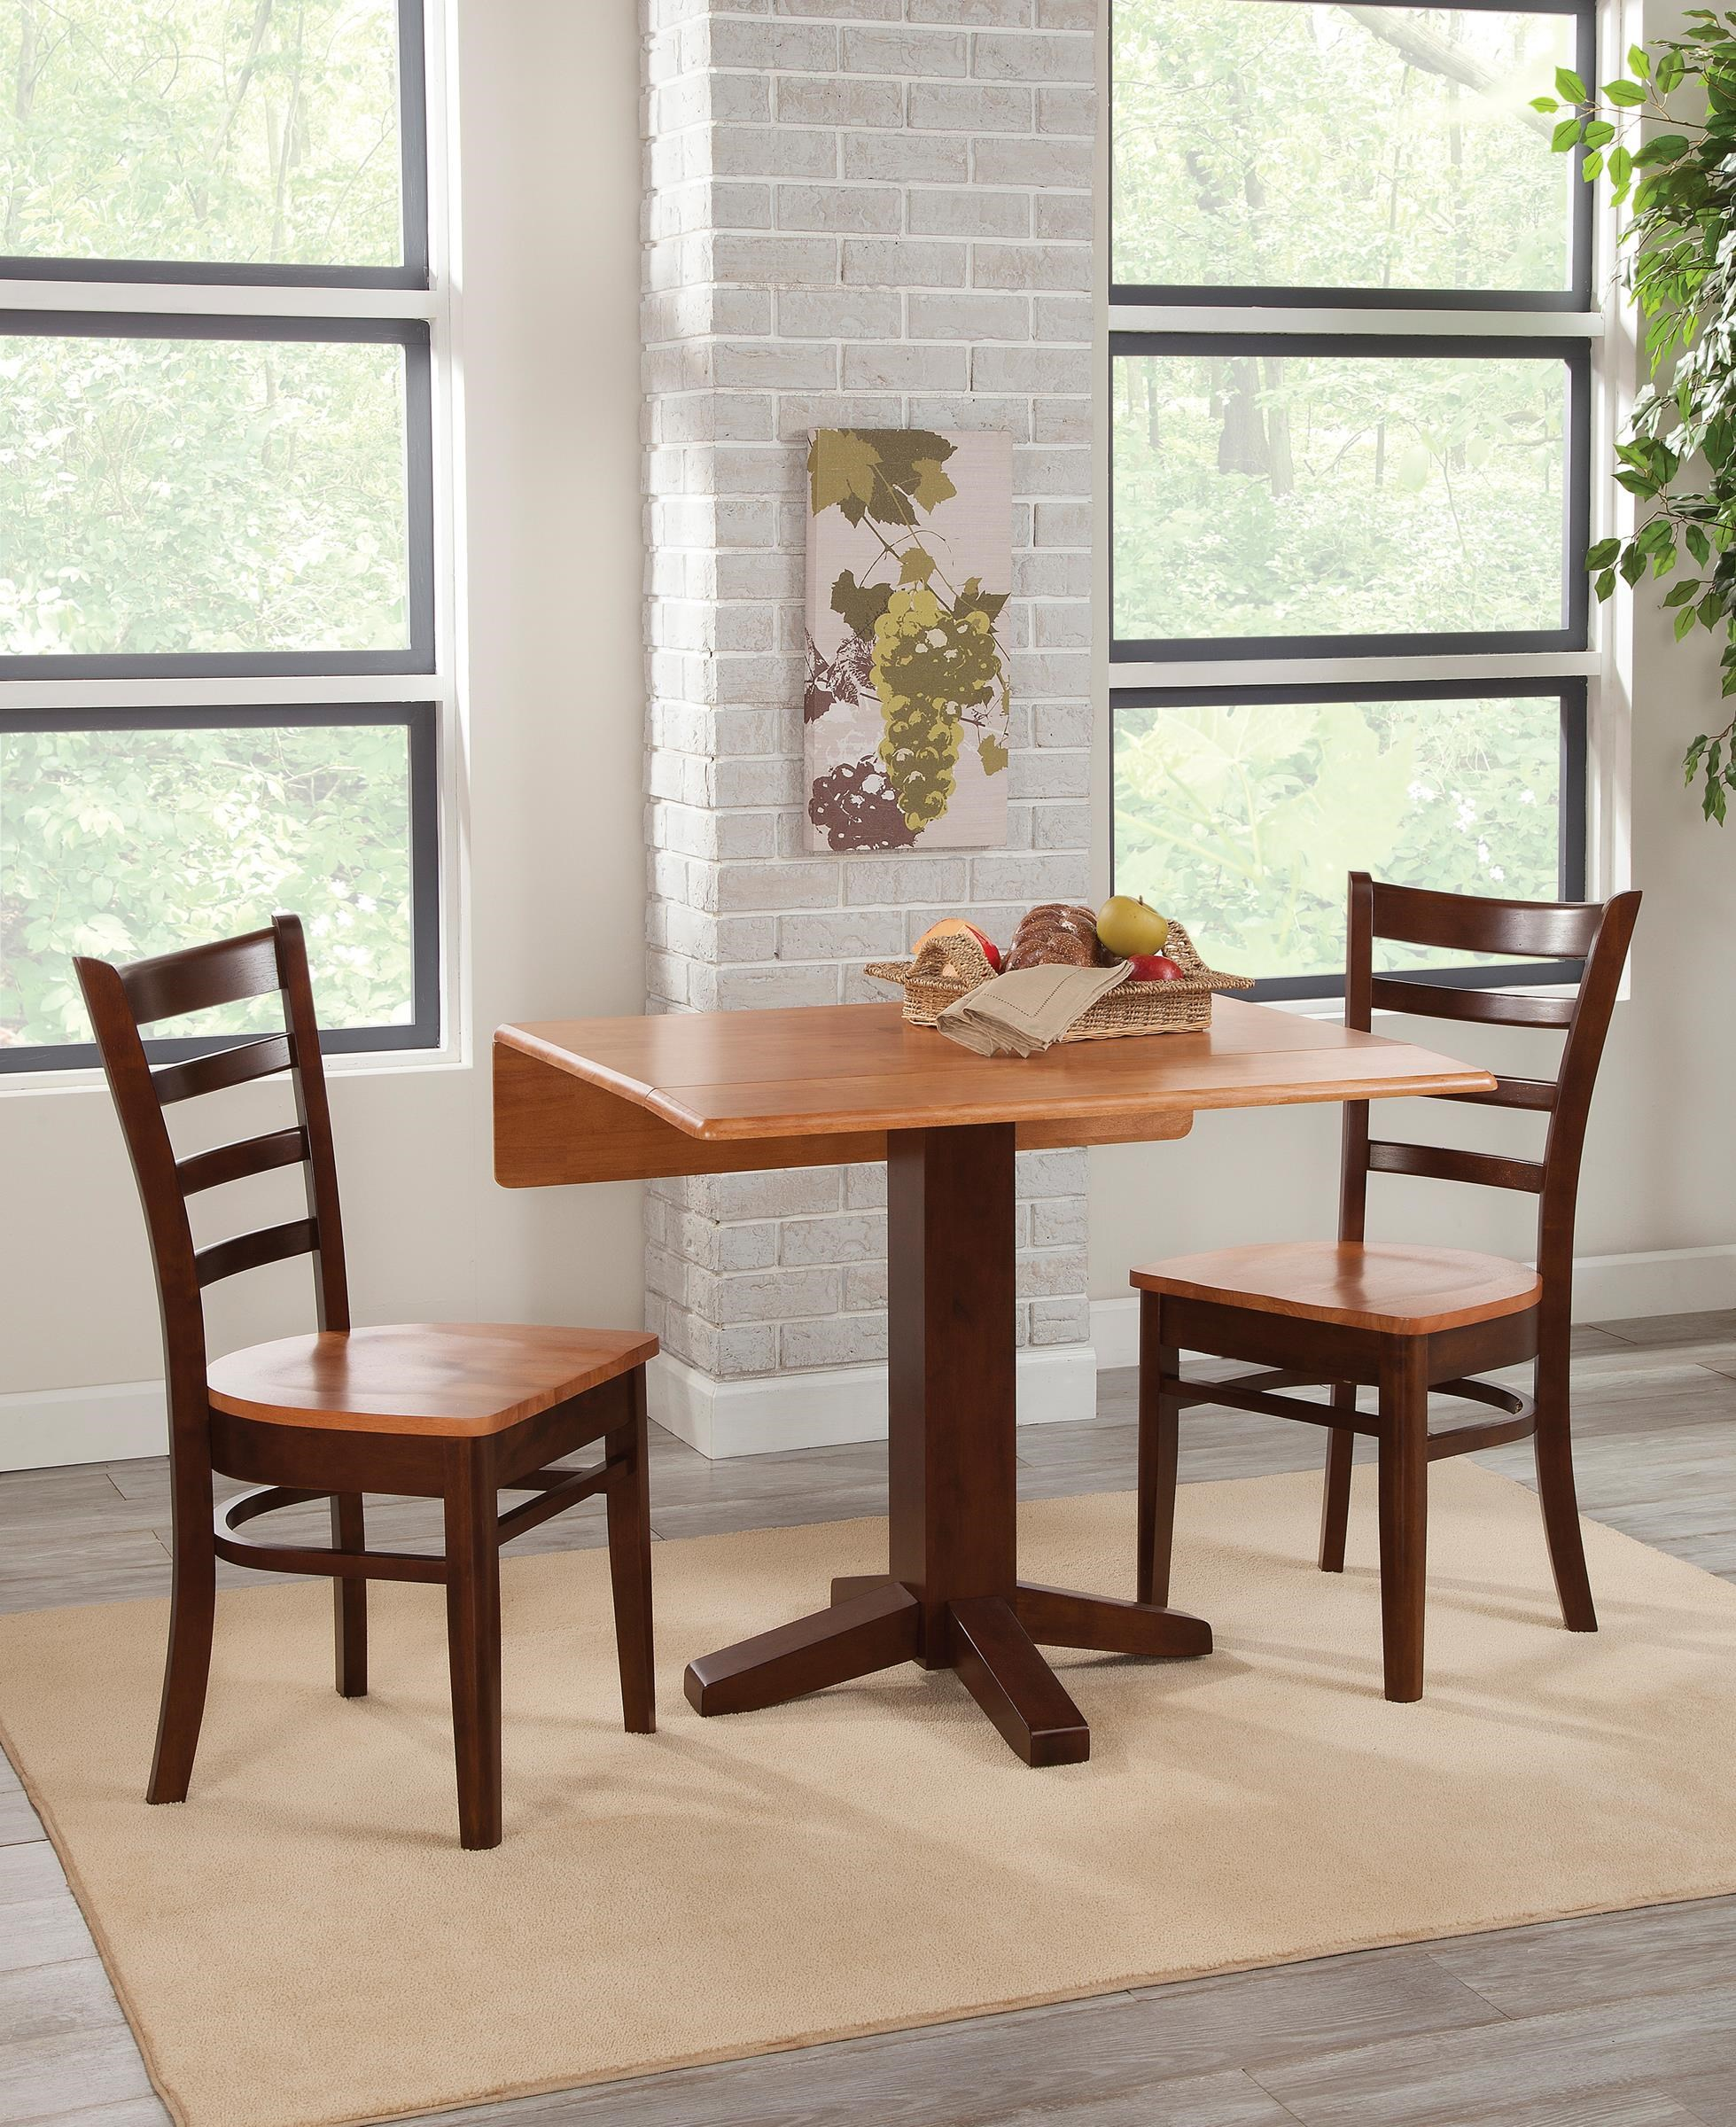 Two Chair Dining Table Set: 3 Pc Dining Set--Table And 2 Side Chairs By John Thomas